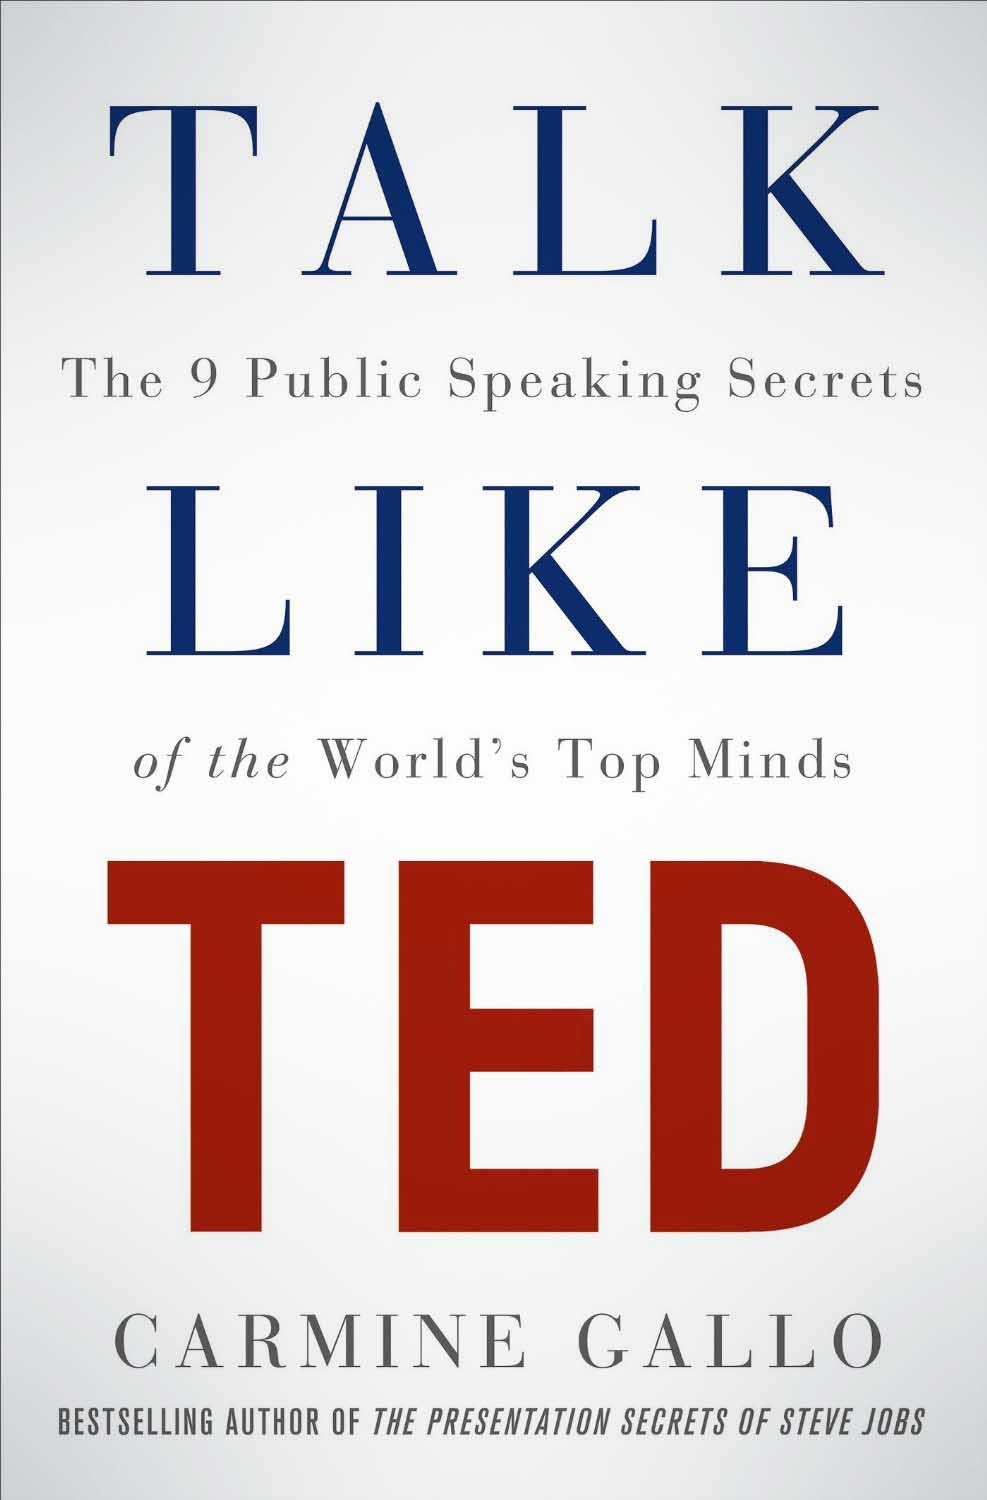 Talk Like TED The 9 Public Speaking Secrets of the World's Top Minds